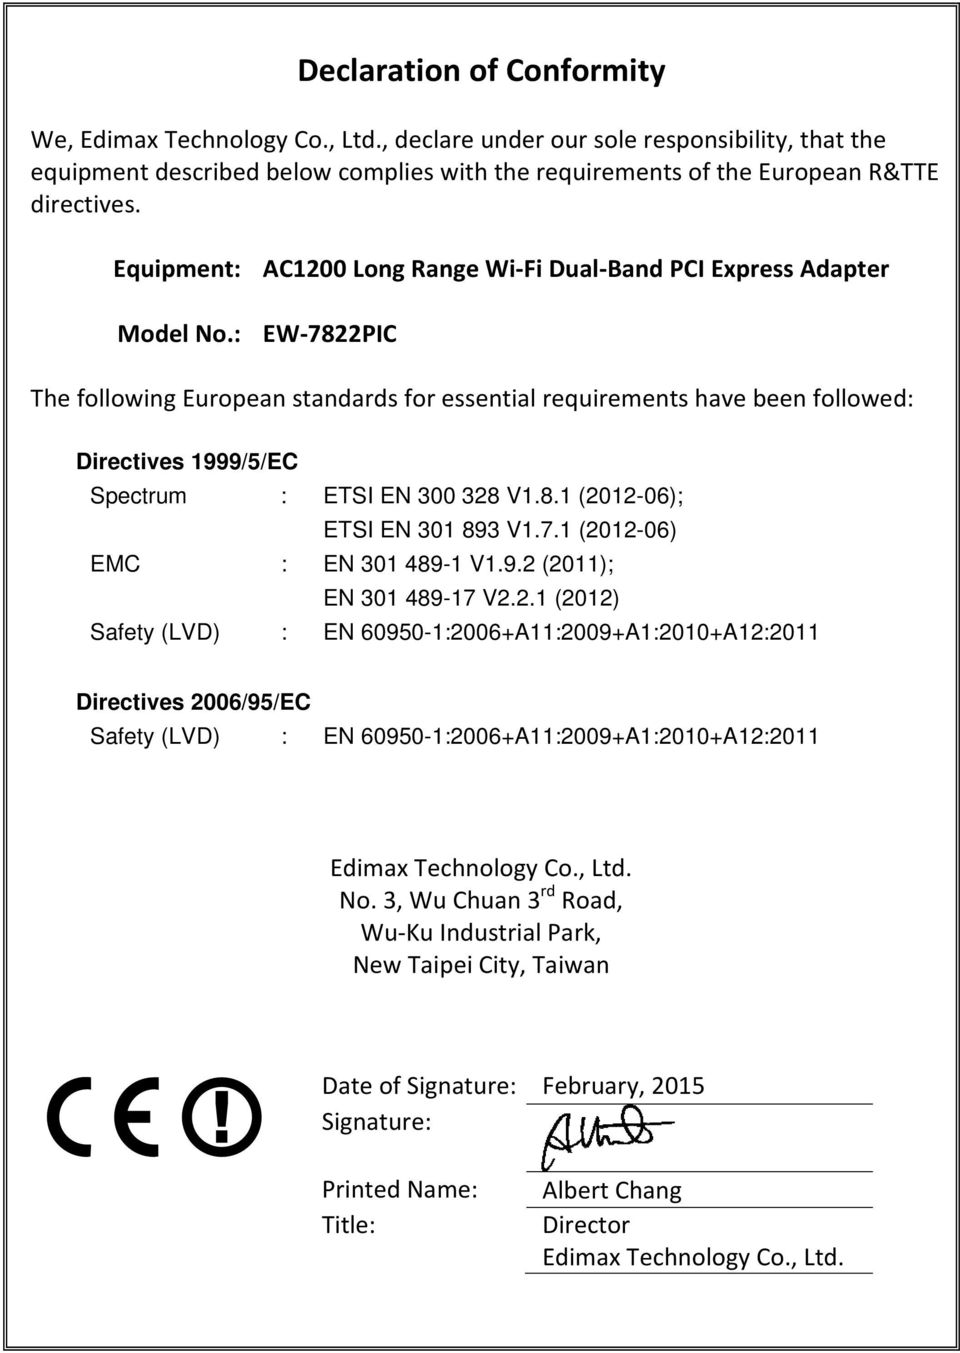 : EW 7822PIC The following European standards for essential requirements have been followed: Directives 1999/5/EC Spectrum : ETSI EN 300 328 V1.8.1 (2012-06); ETSI EN 301 893 V1.7.1 (2012-06) EMC : EN 301 489-1 V1.